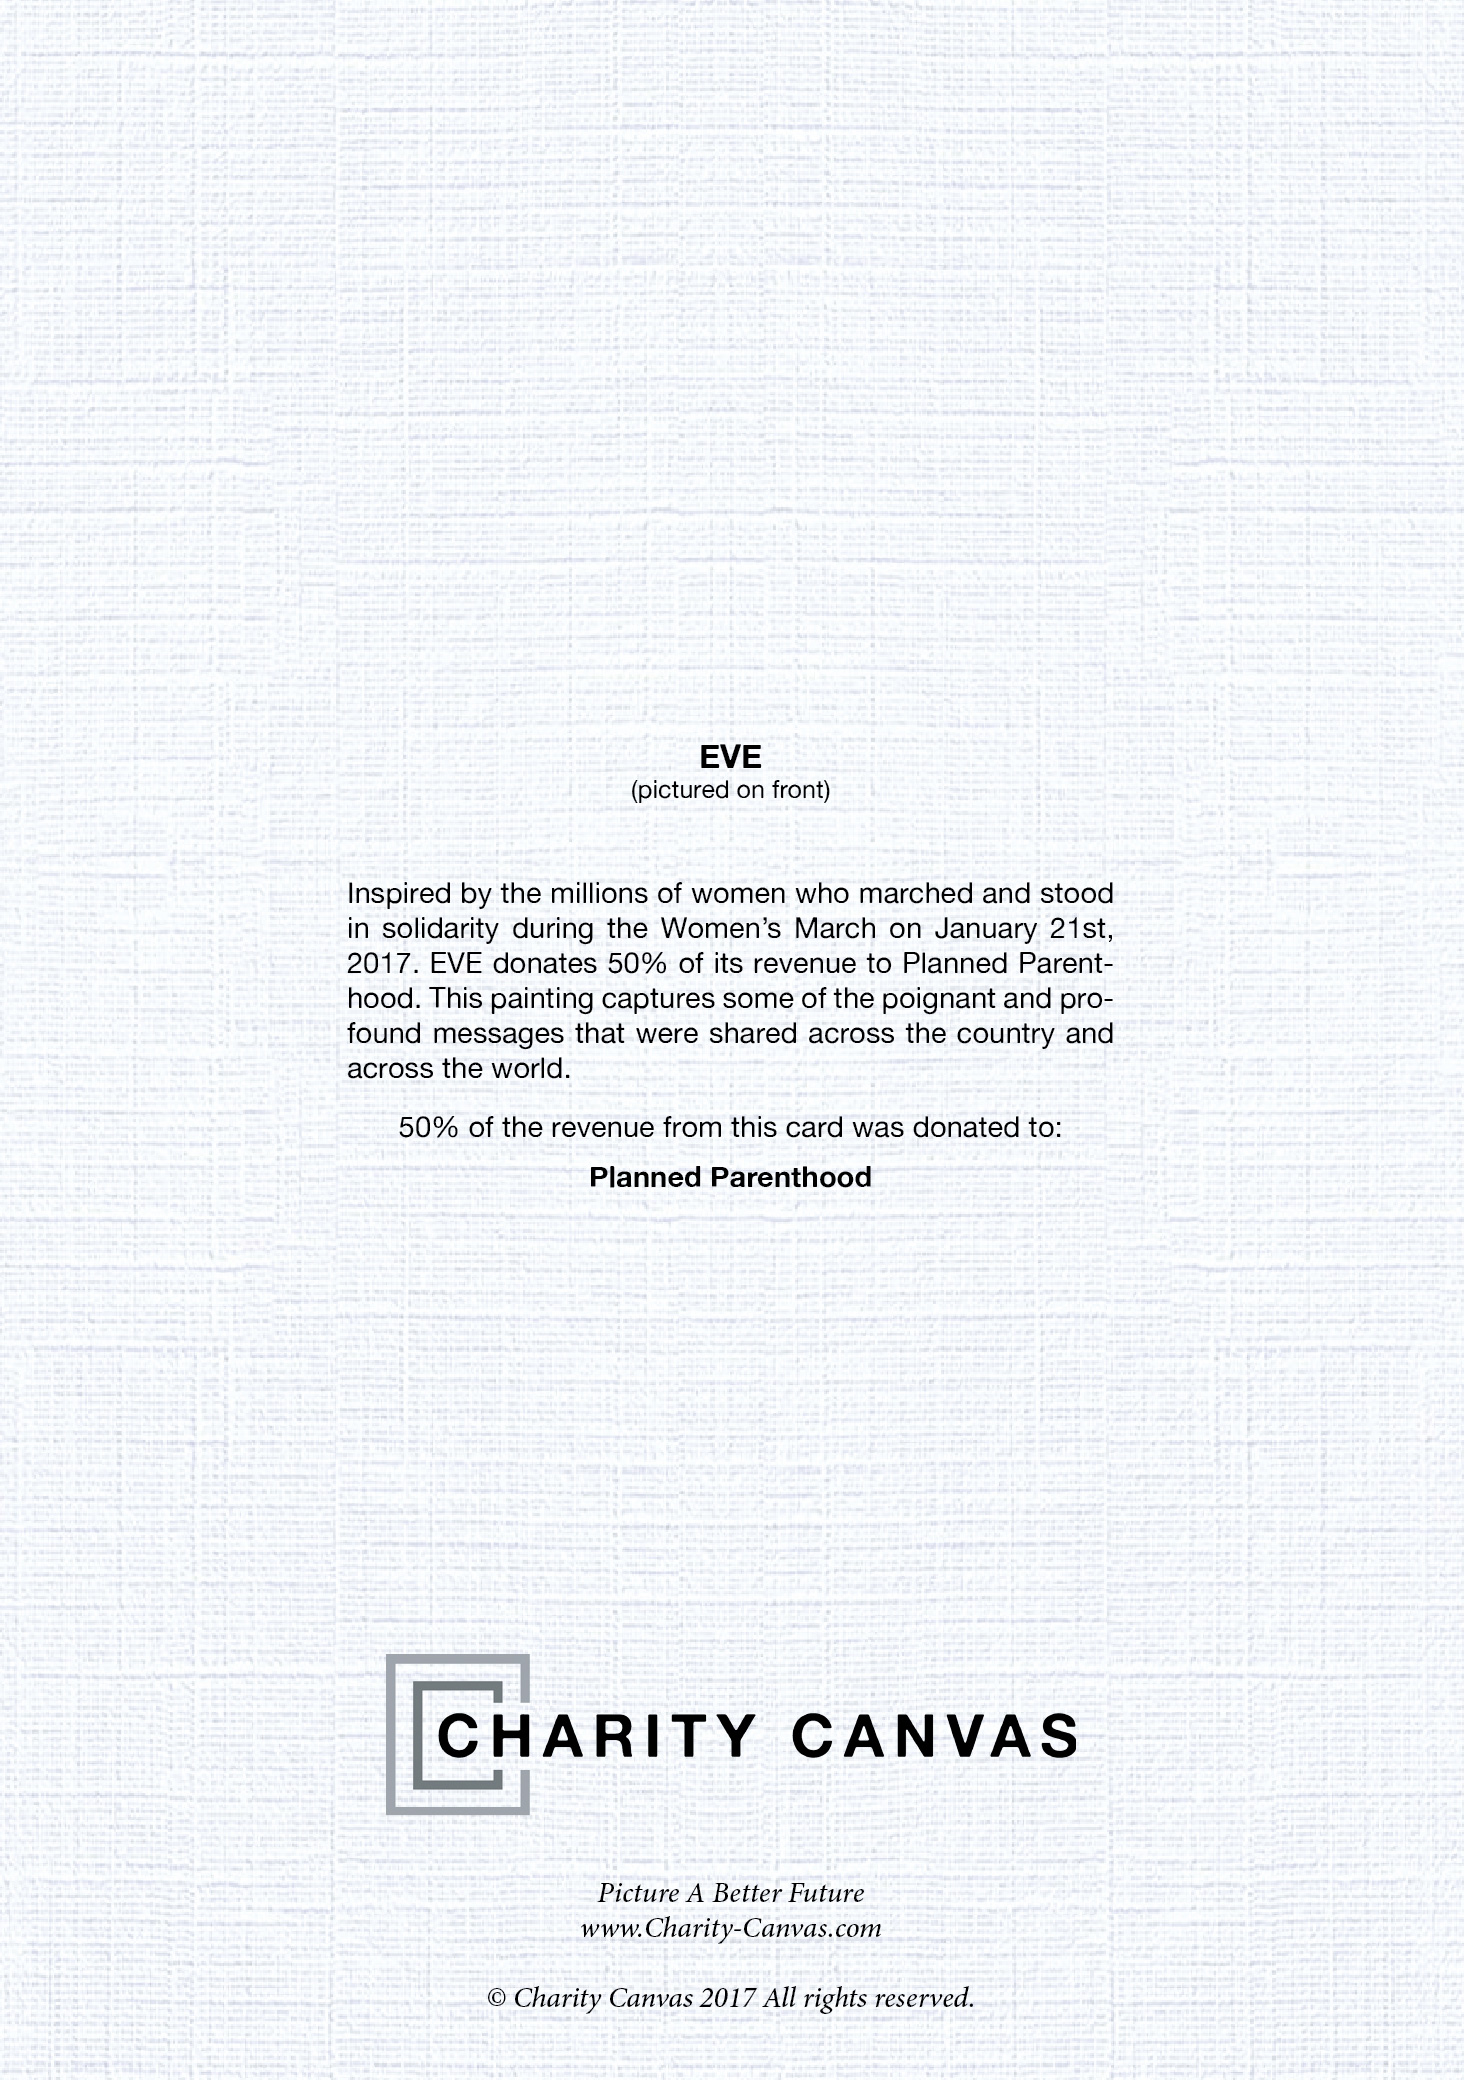 Eve blank holiday greeting cards charity canvas eve blank holiday greeting cards m4hsunfo